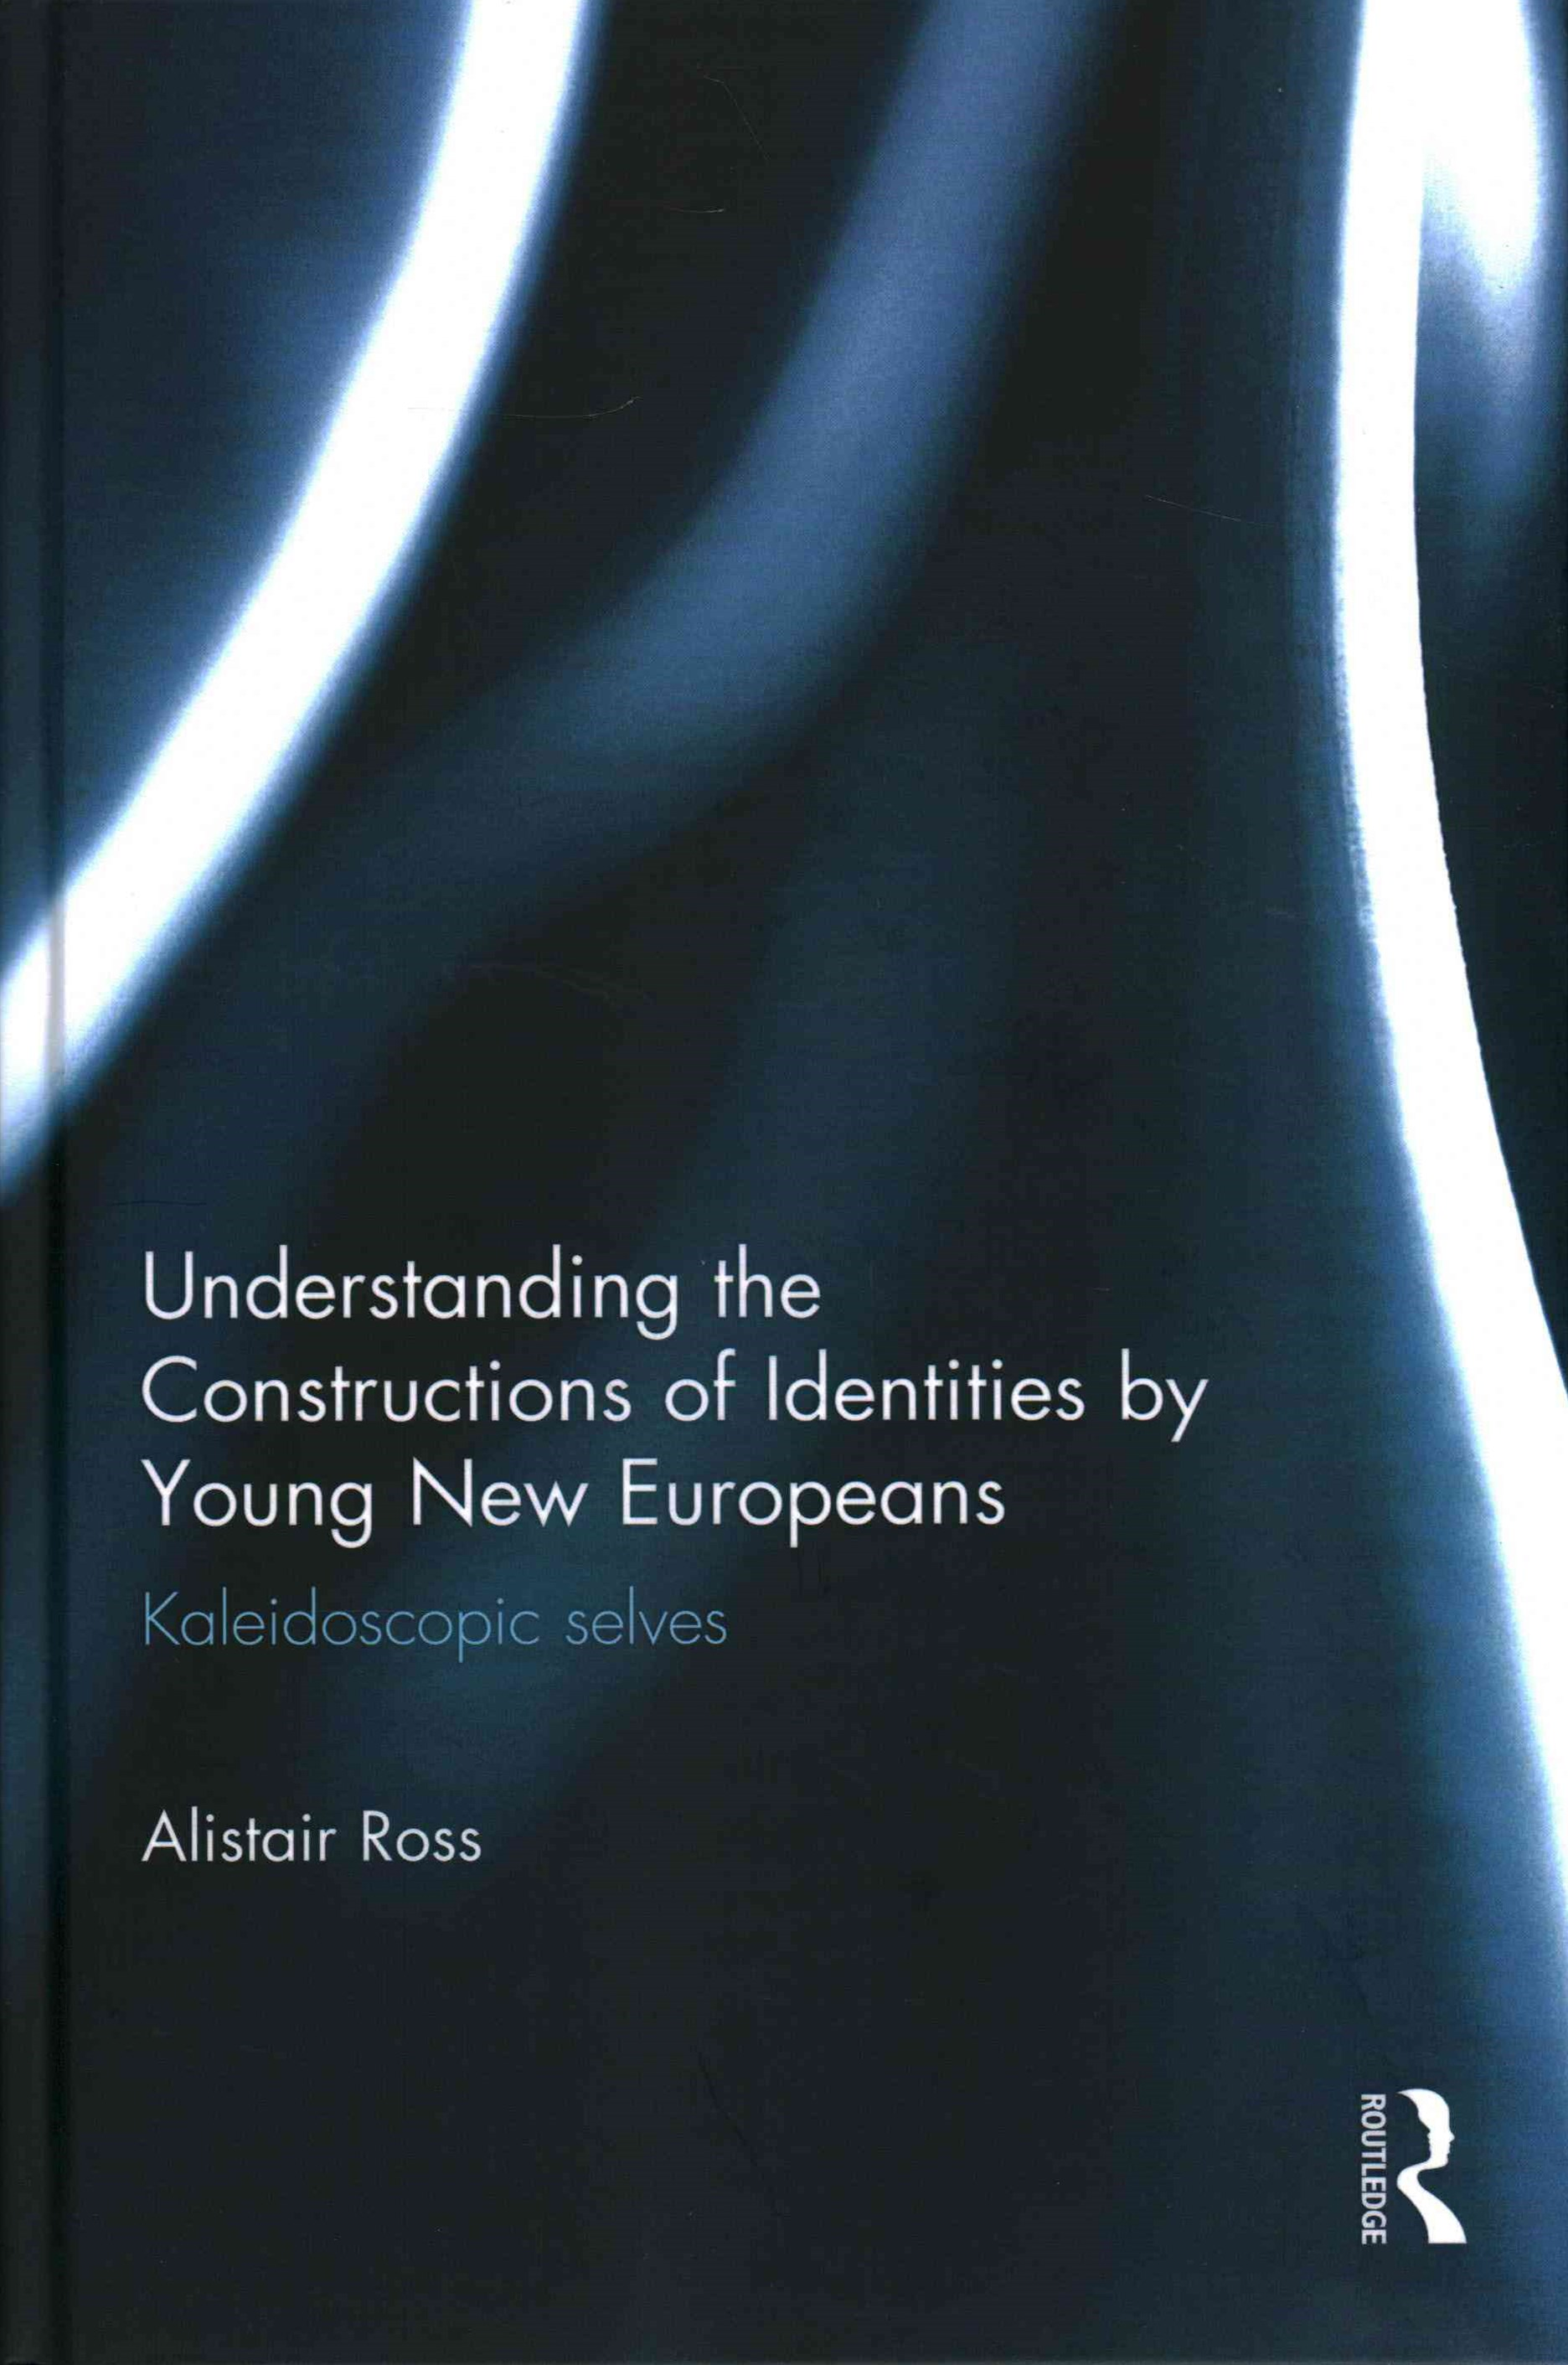 Understanding the Constructions of Identities by Young New Europeans